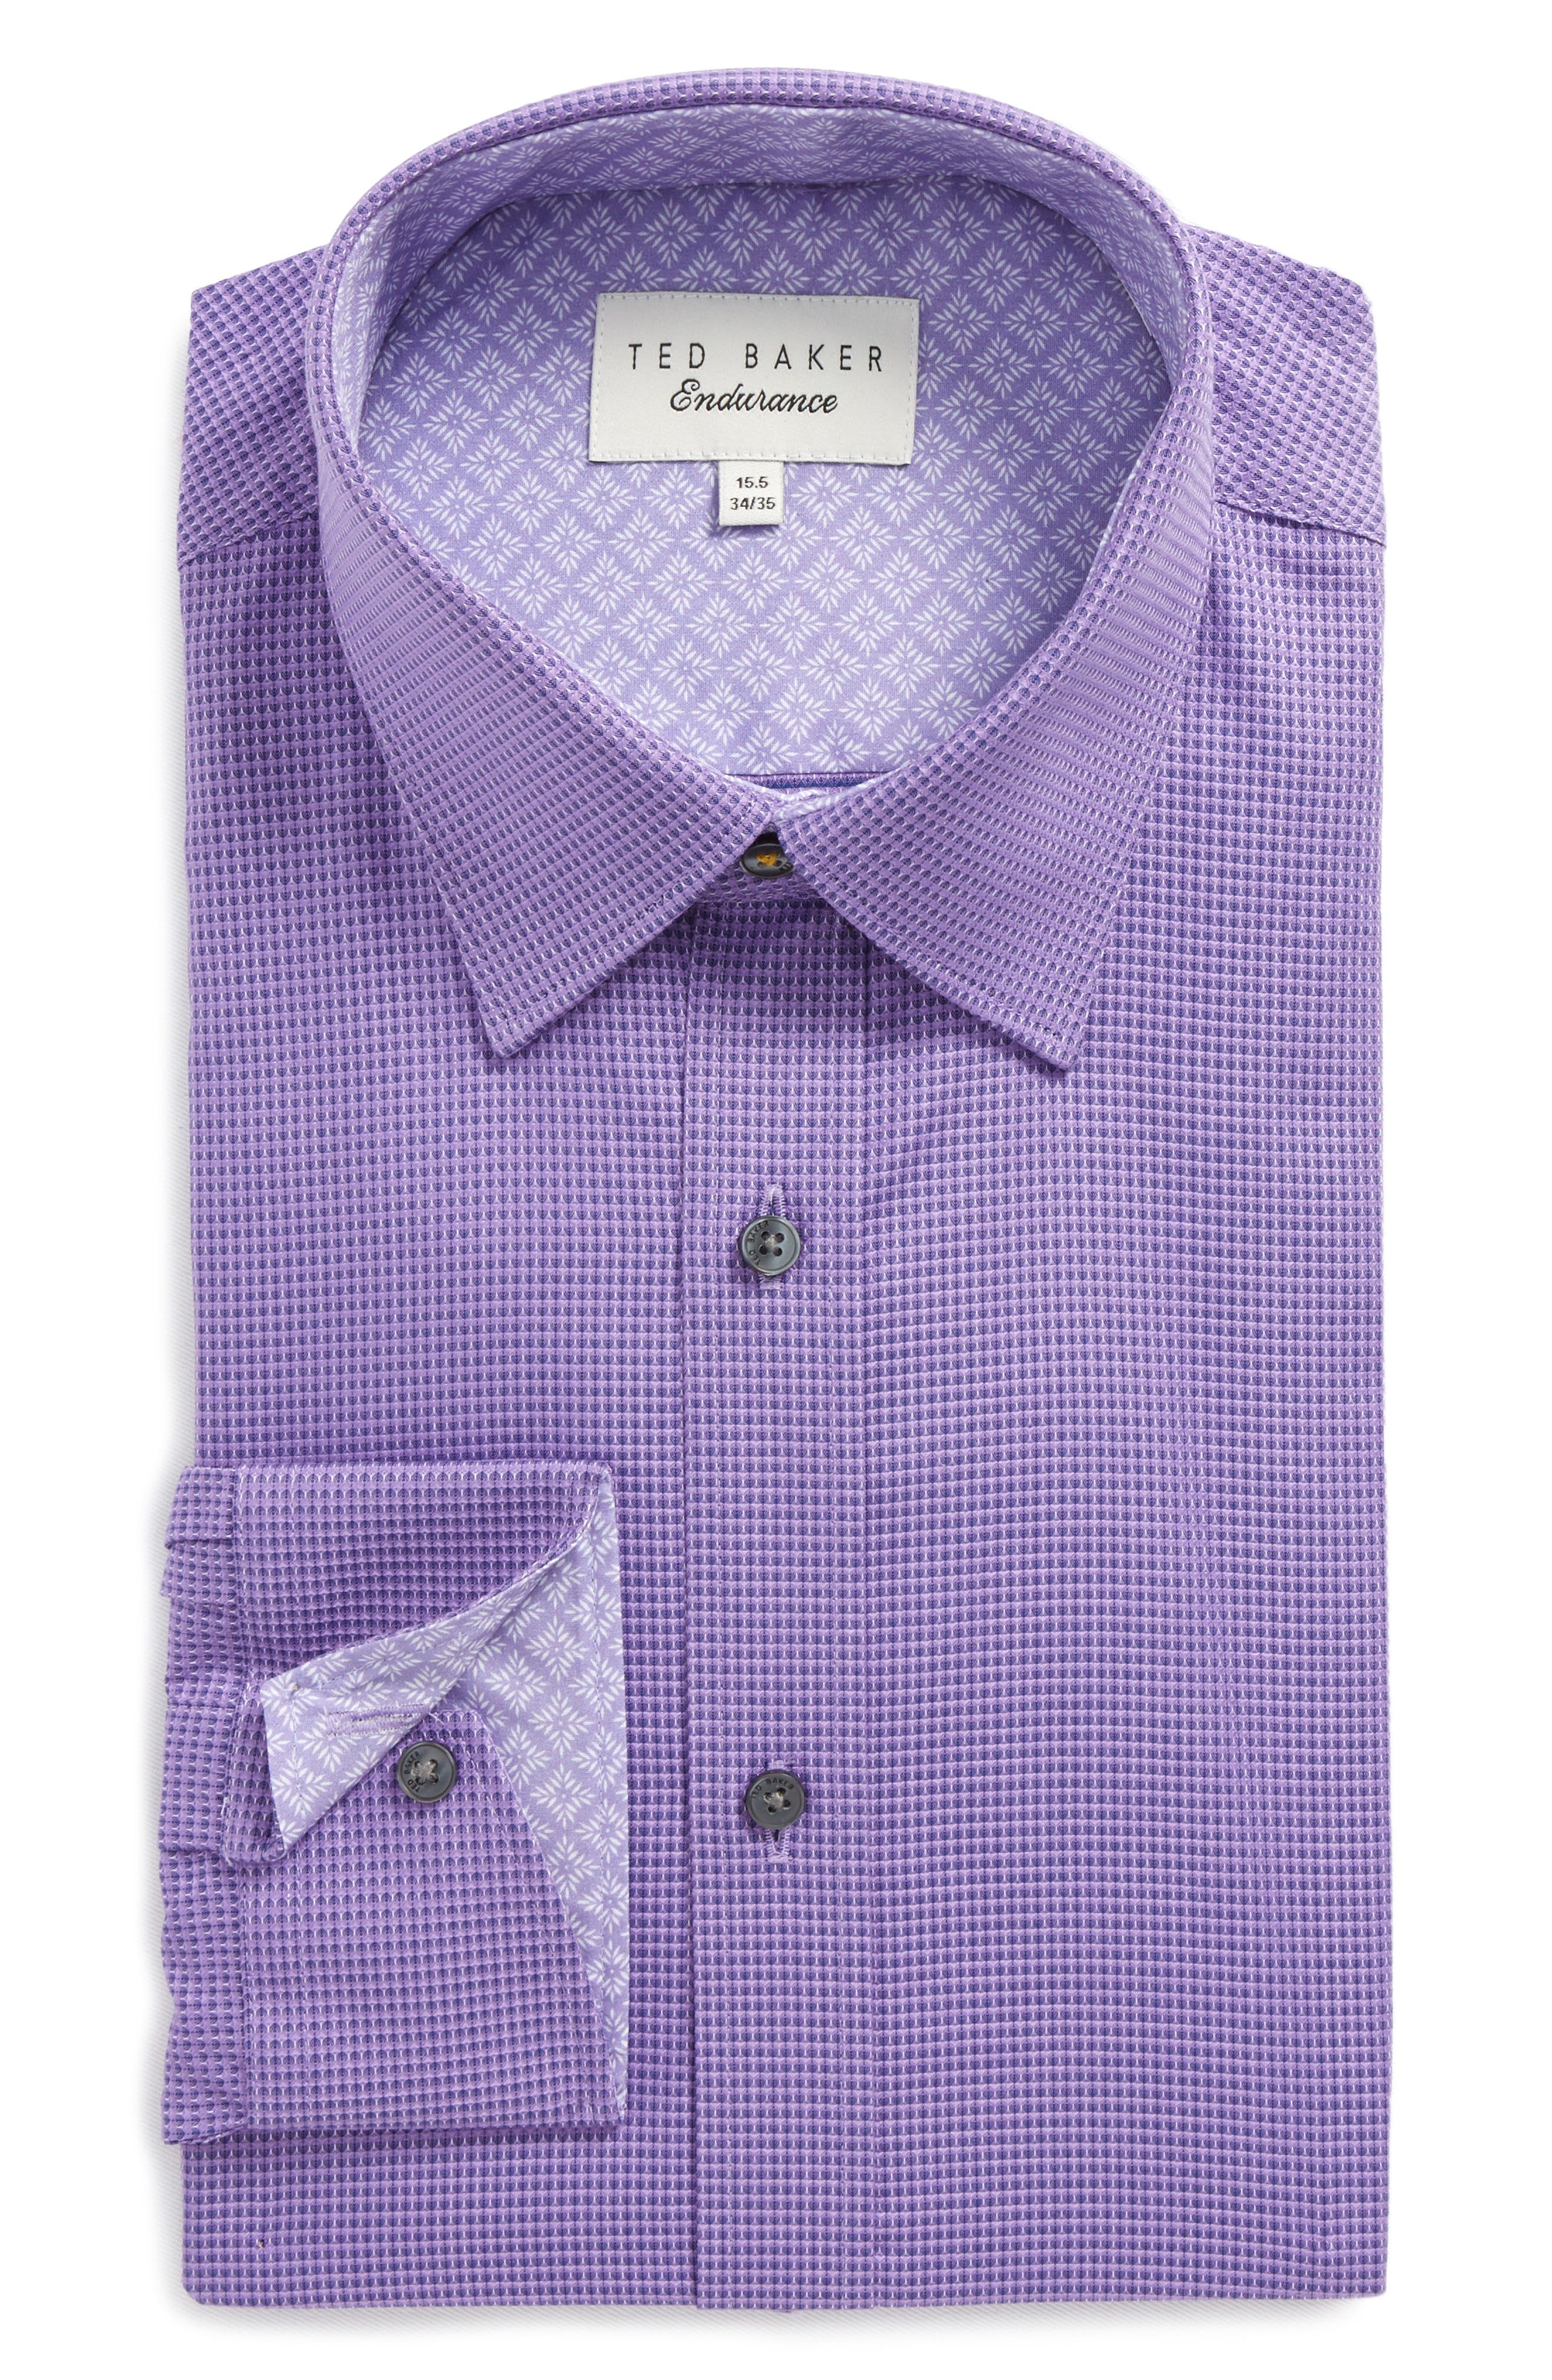 Ted Baker London Endurance Dudders Trim Fit Dress Shirt